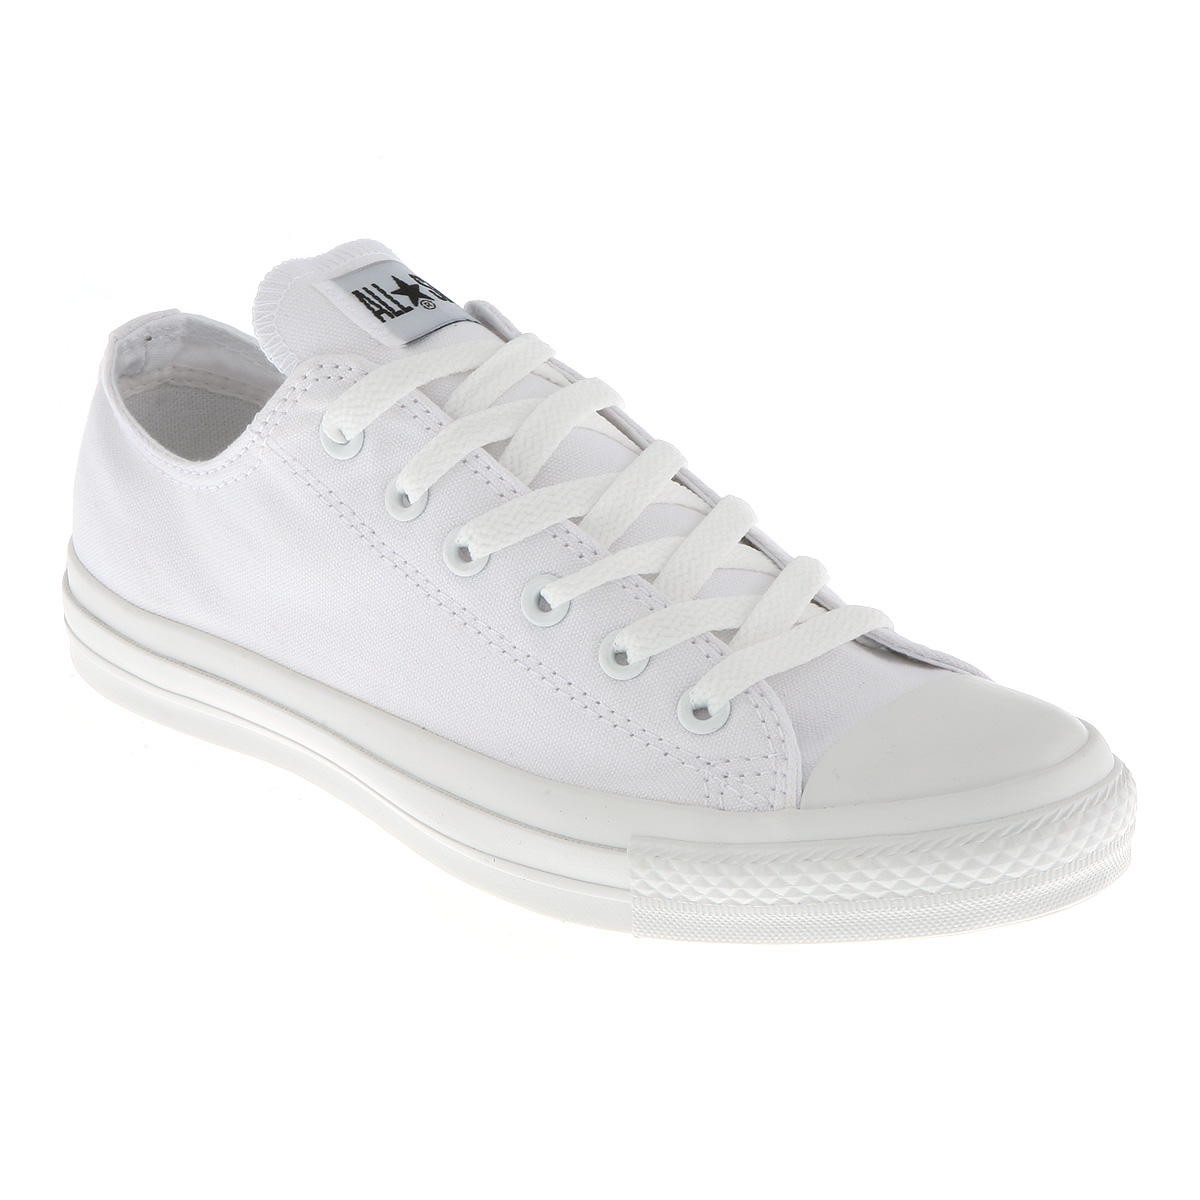 Converse-All-Star-Ox-Low-White-Mono-Canvas-Exclusive-Trainers-Shoes